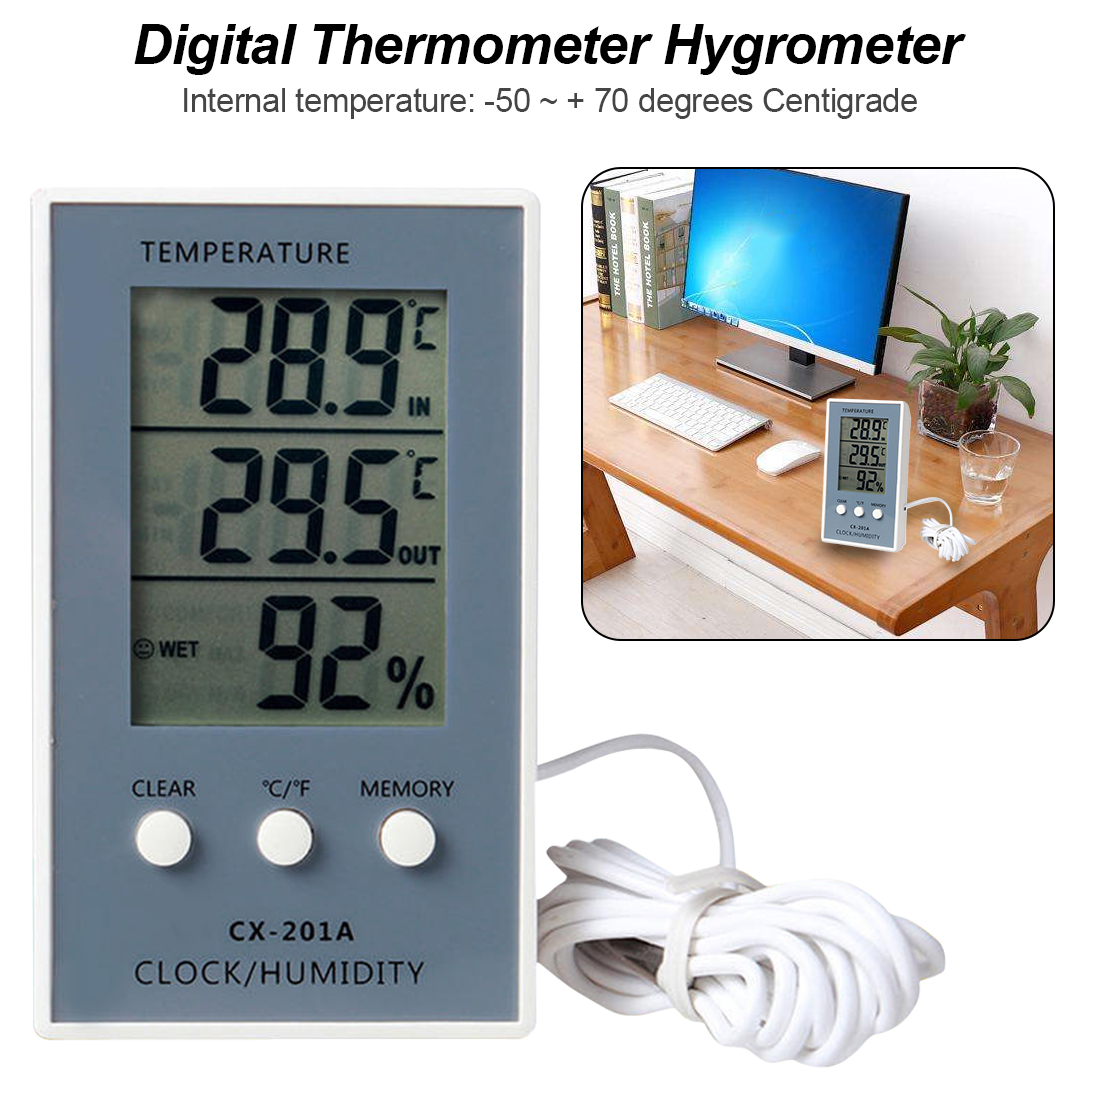 reputable site 459e9 cea6d Thermometer Hygrometer Messen Temperatur Feuchtigkeit Digital LCD Meter  Indoor Outdoor Wetter Station Tester C F Max Min Wert